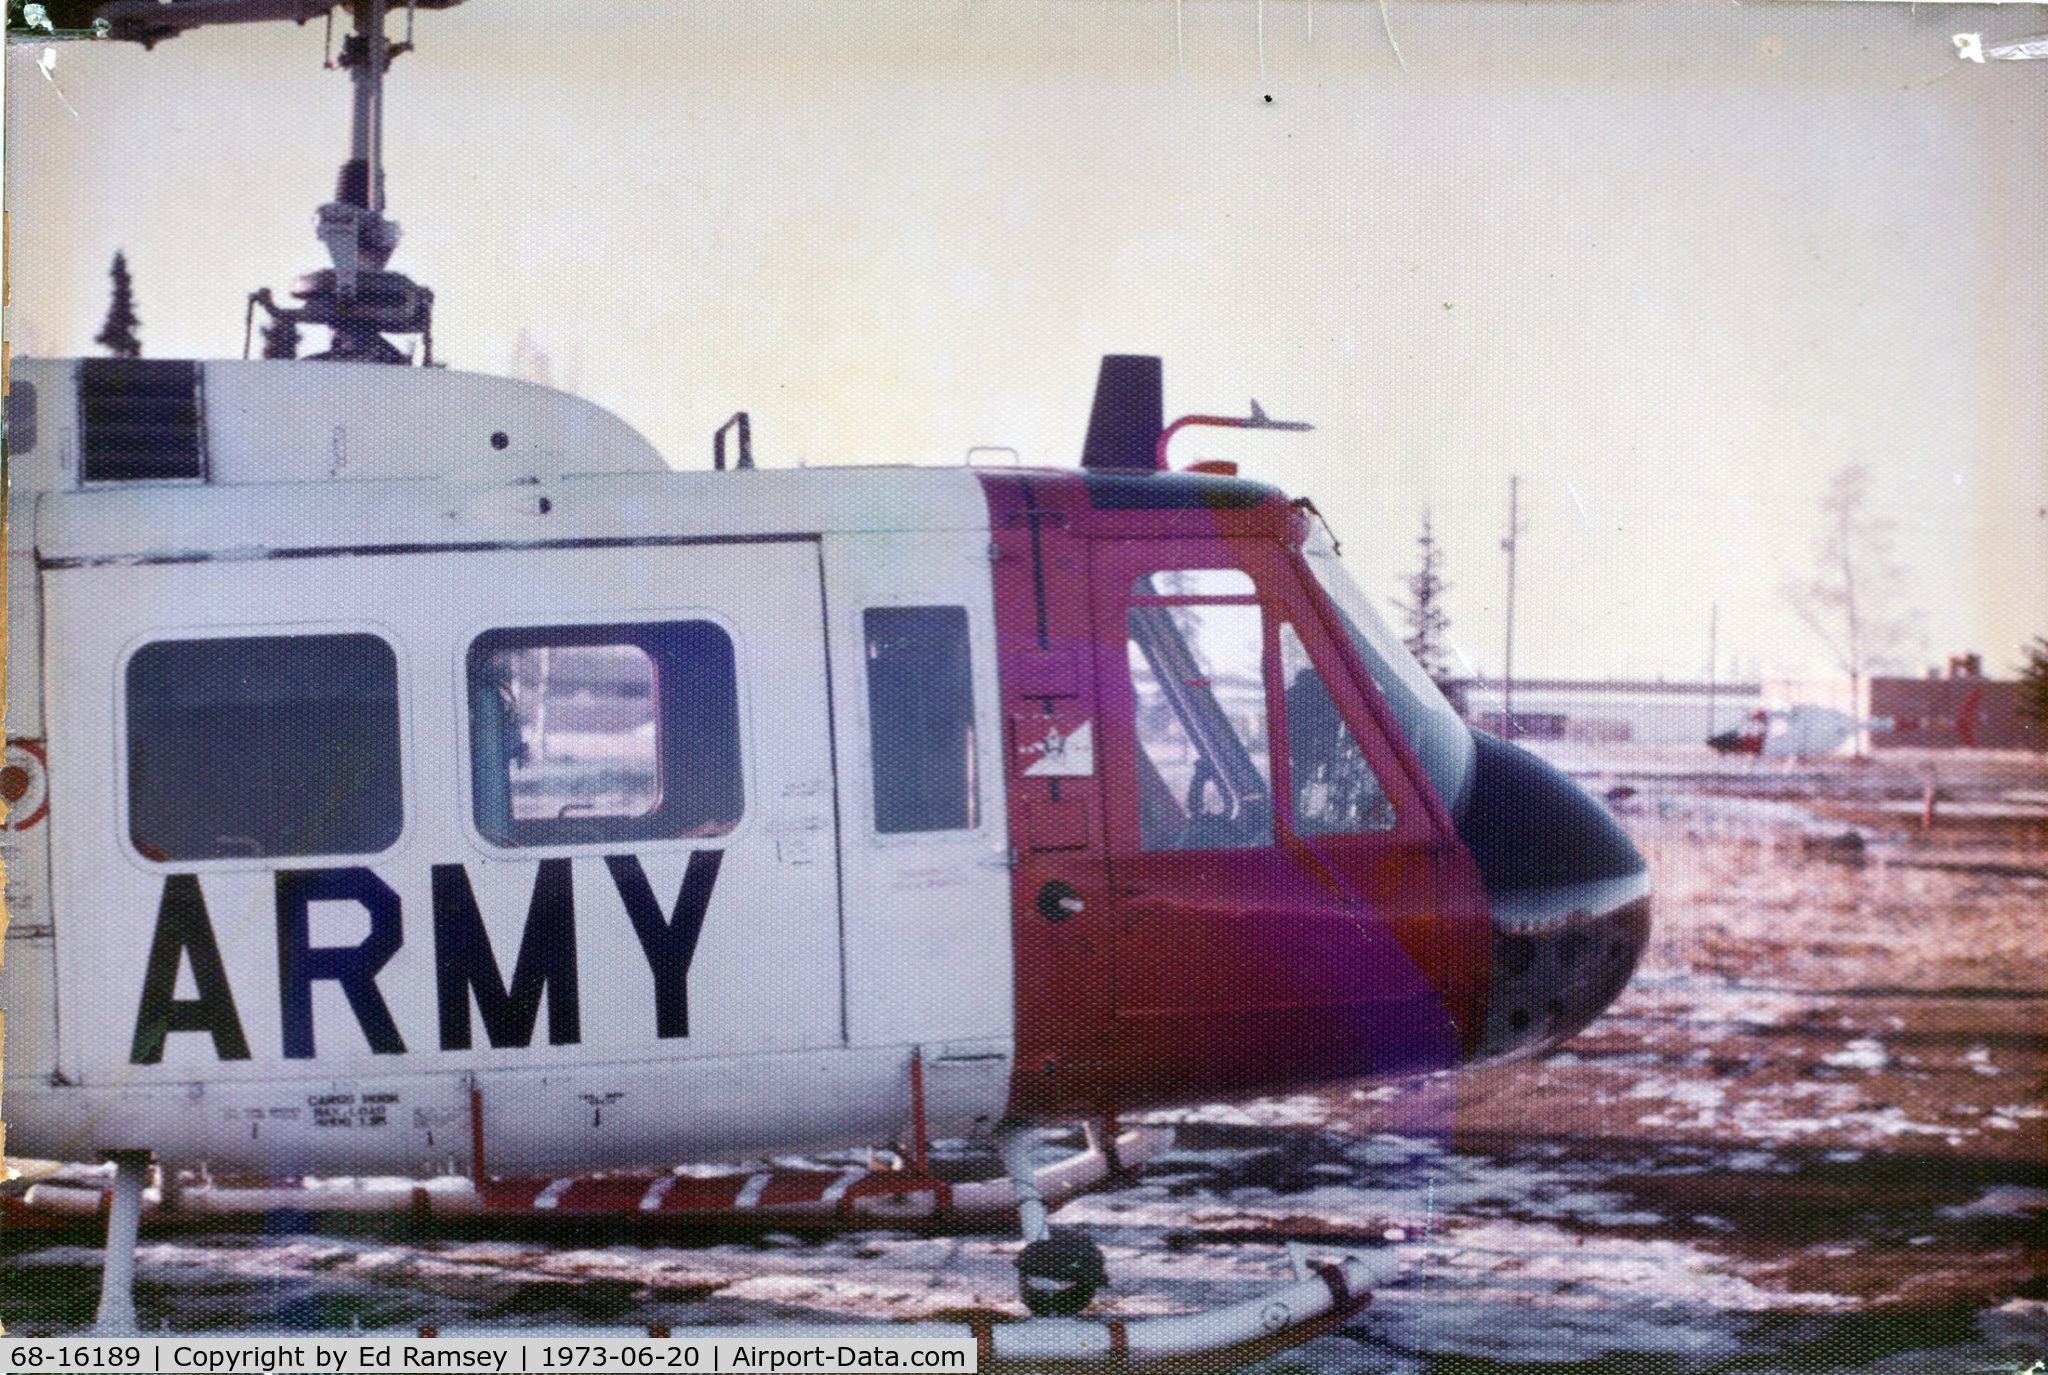 68-16189, 1968 Bell UH-1H Iroquois C/N 10848, 68-16189 was the VIP Acft from 1972-1974 in the 120th Avn BN Fort Richardson, AK while I was there.  I don't know how much longer it was there.